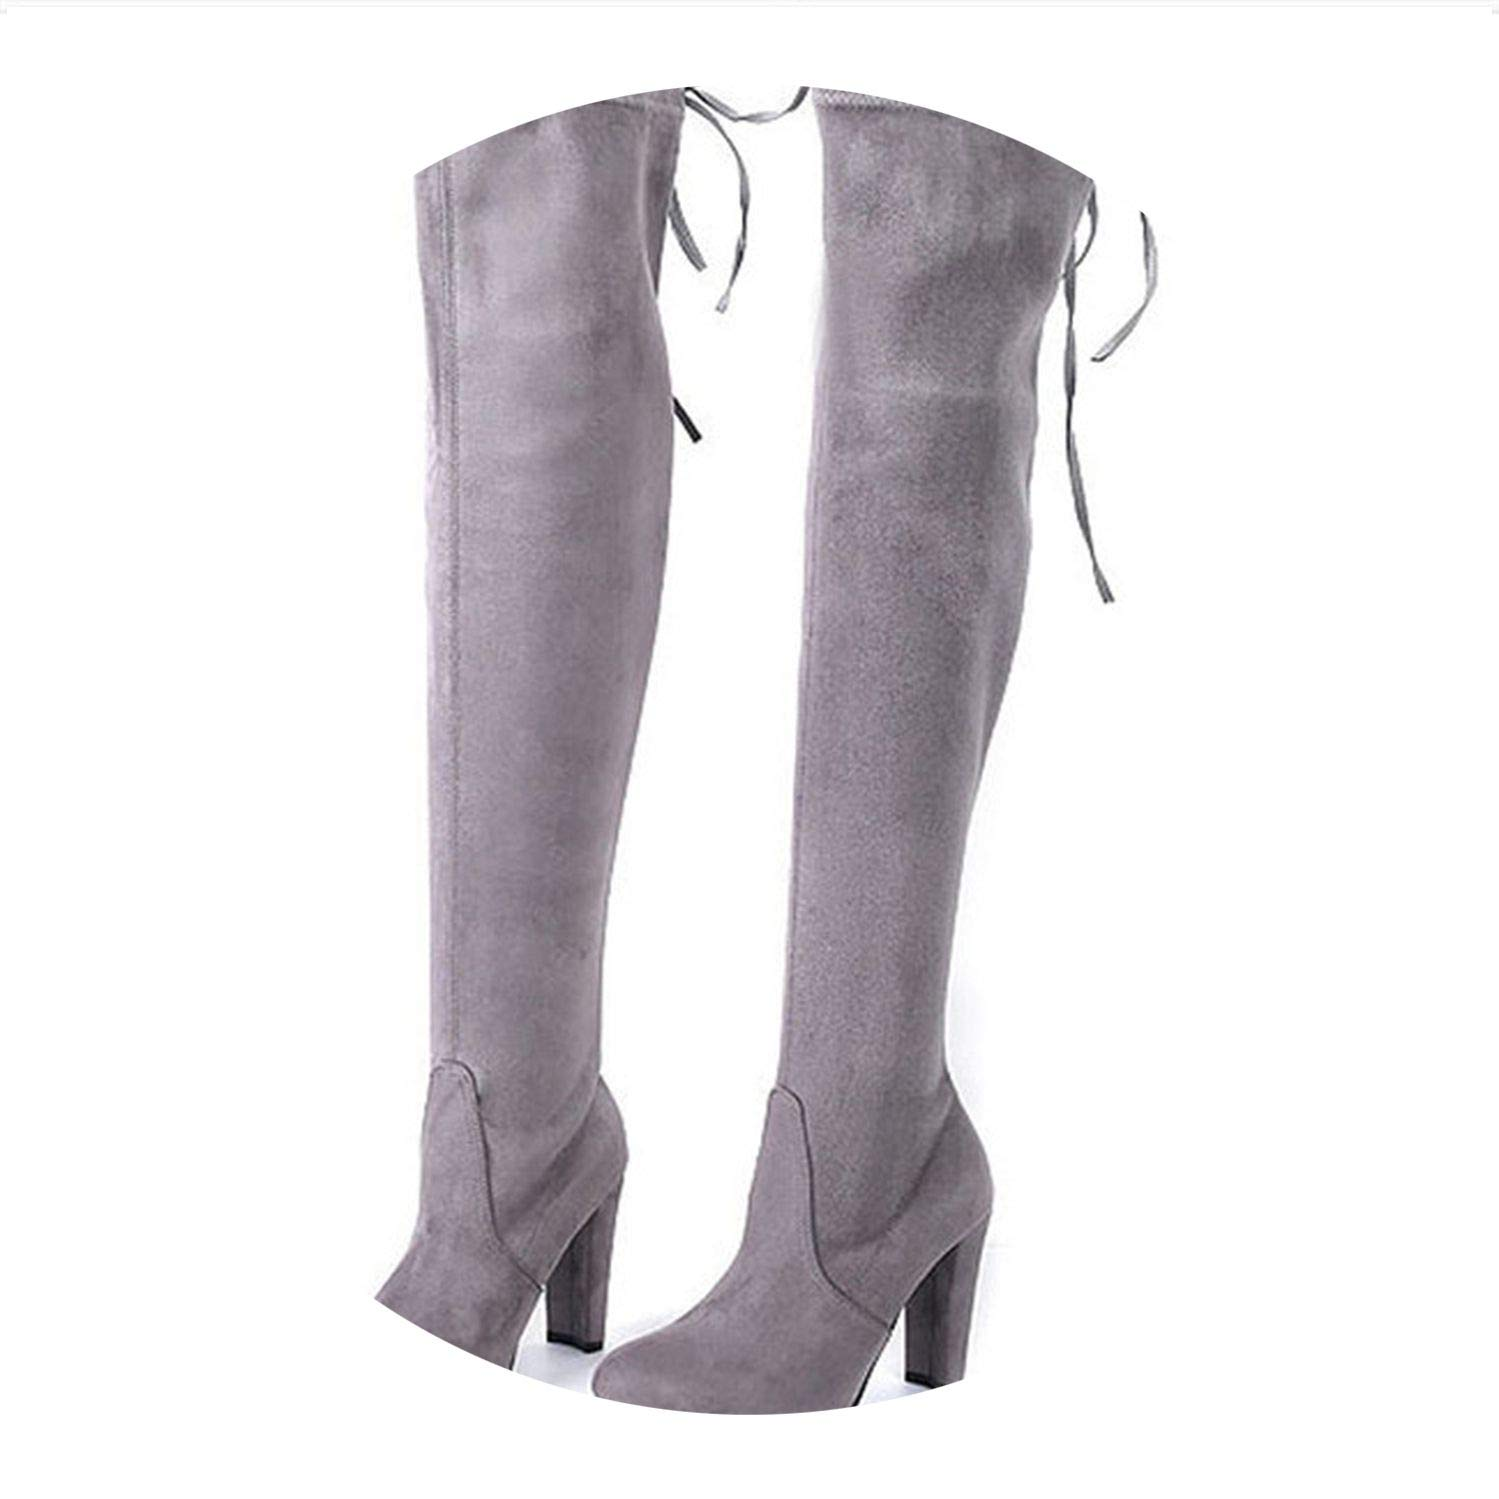 Over The Knee Boots Lace Up High Heels Shoes Slim Thigh High Boots Botas Winter Shoes 34-43